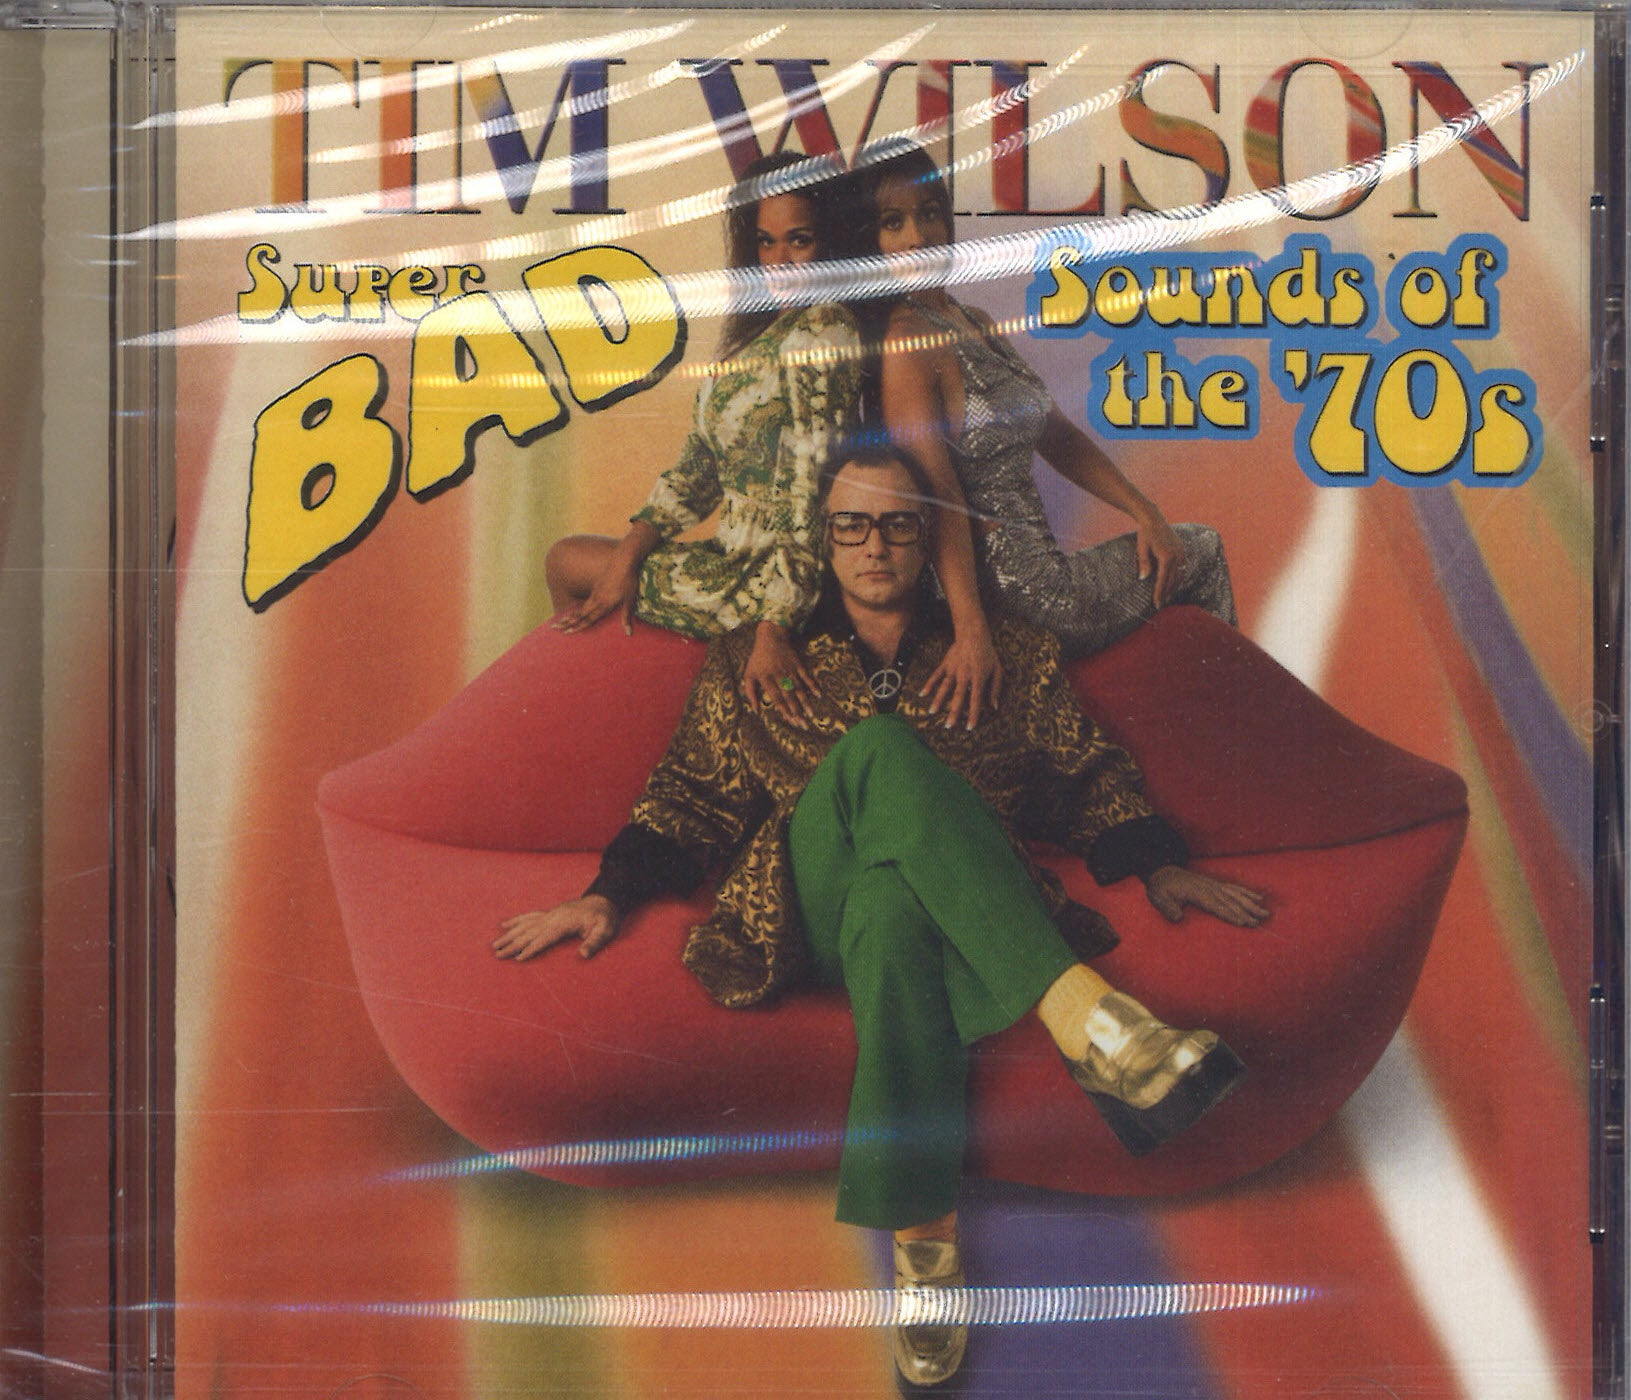 Tim Wilson Super Bad Sounds Of The '70s